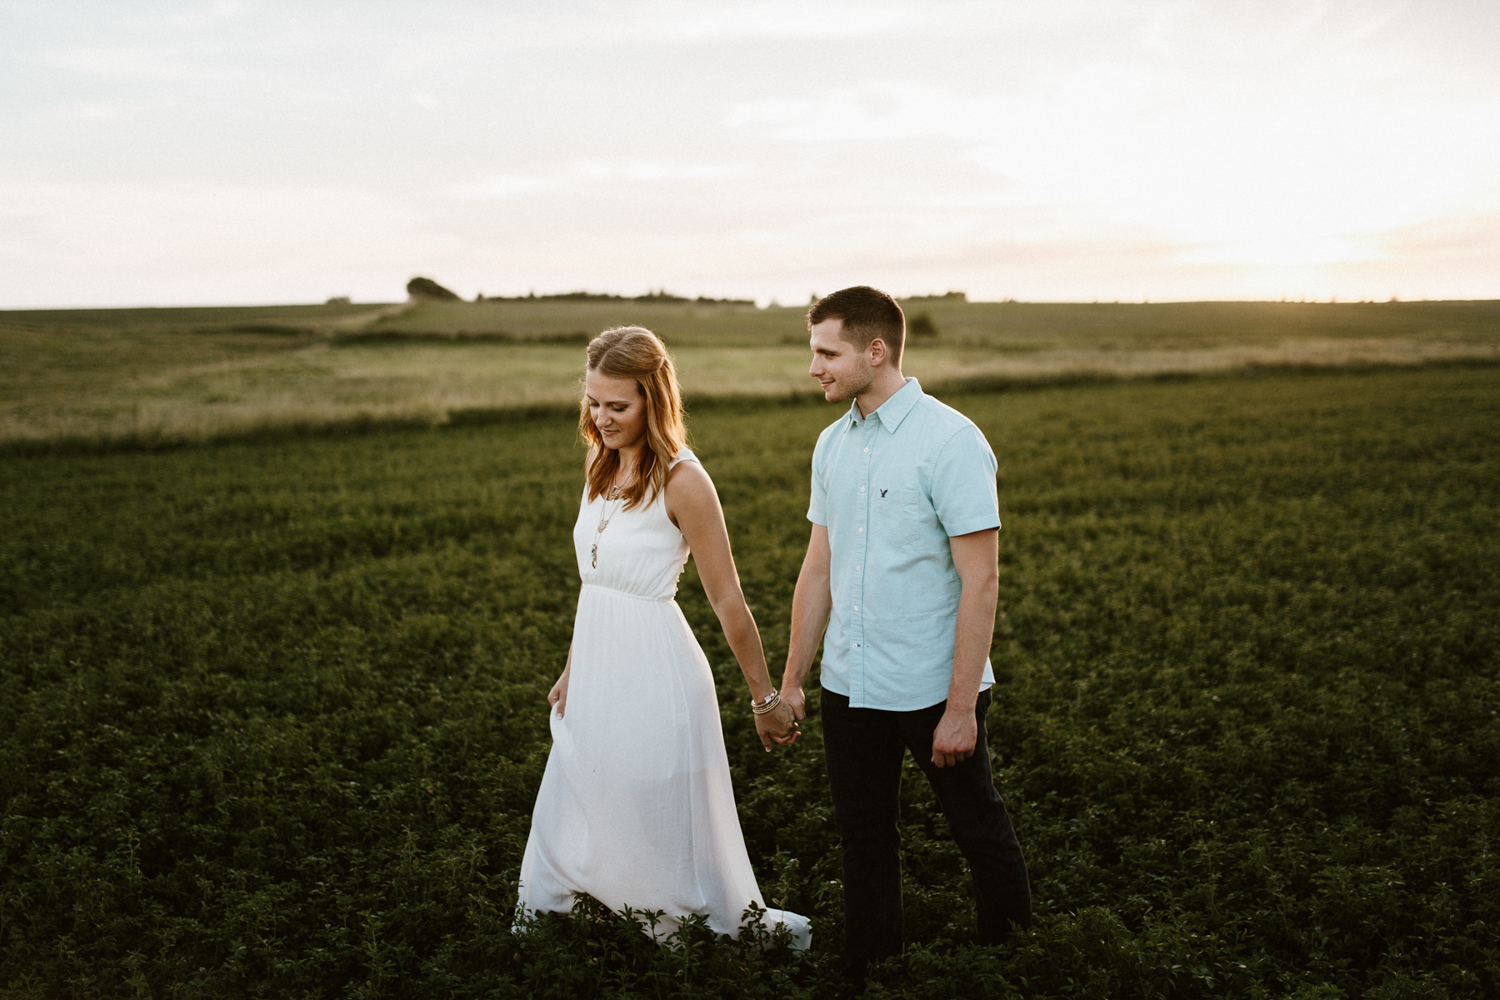 SouthDakota-Iowa-Destination-Wedding-Photographer_25.jpg